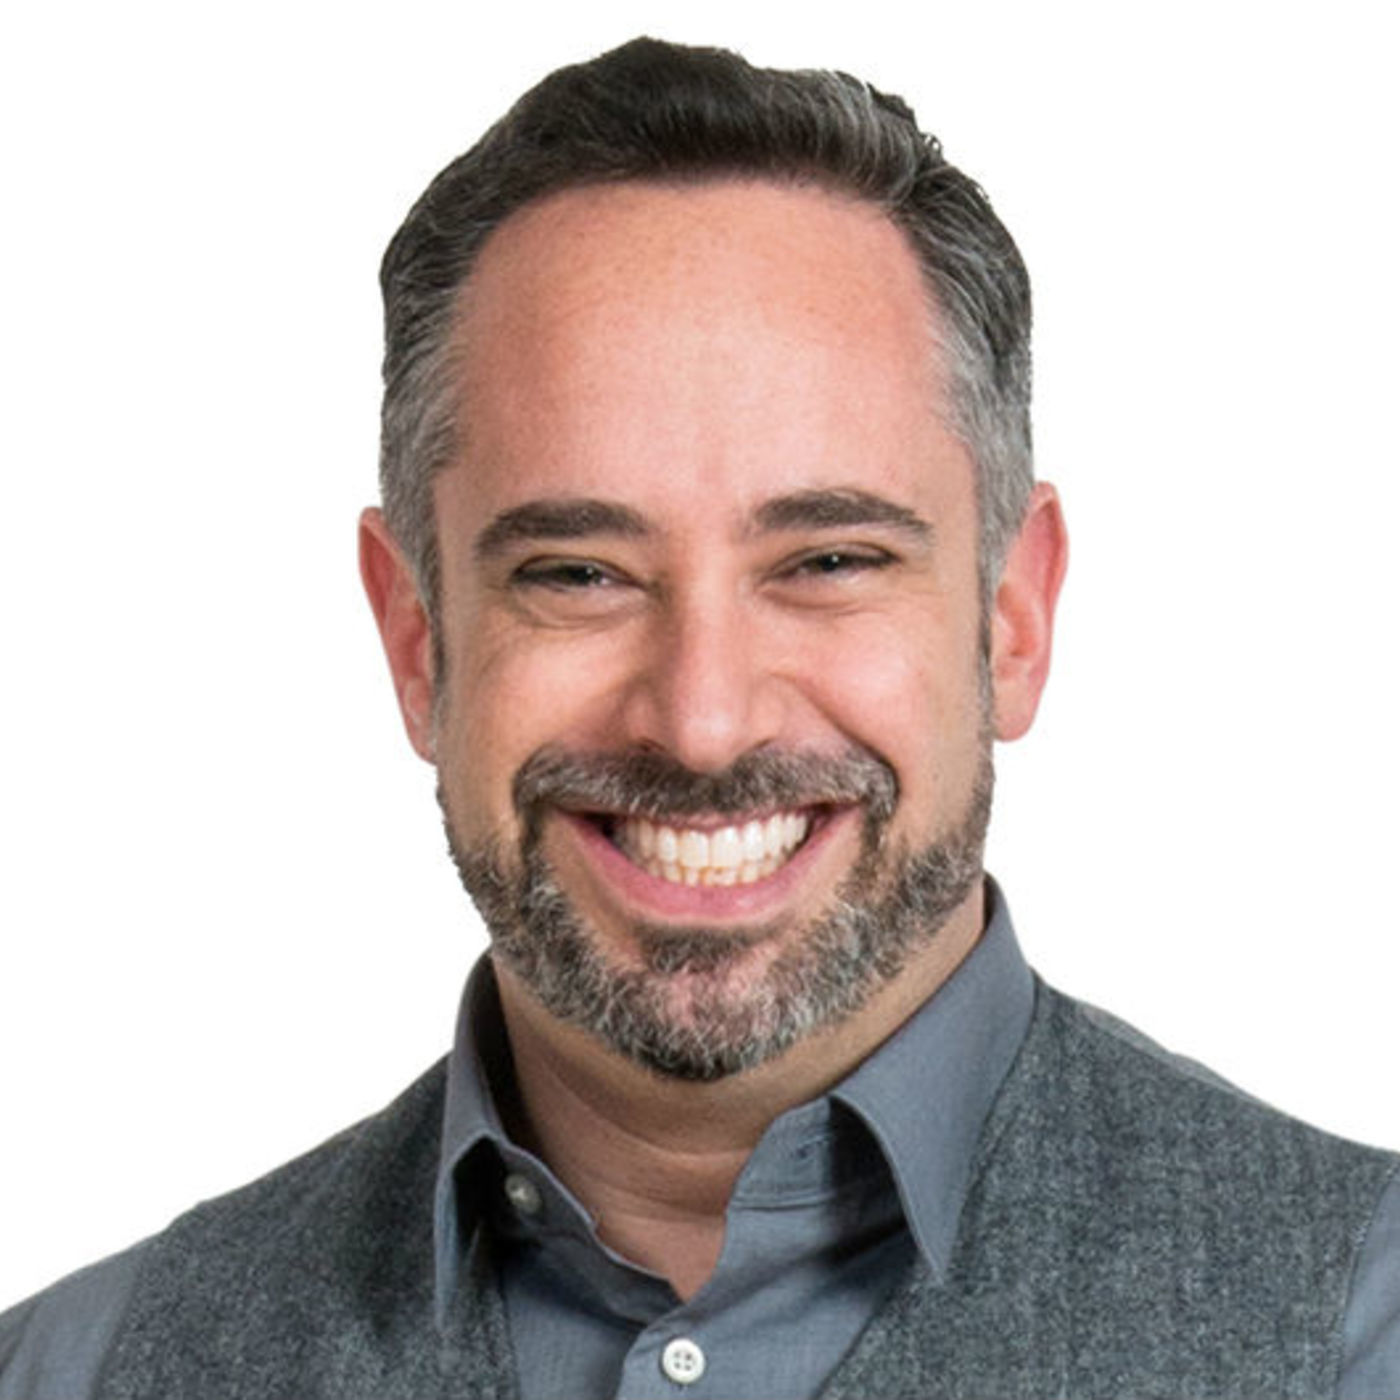 Top Technologies and Platforms for Onboarding w/ Jay Goldman